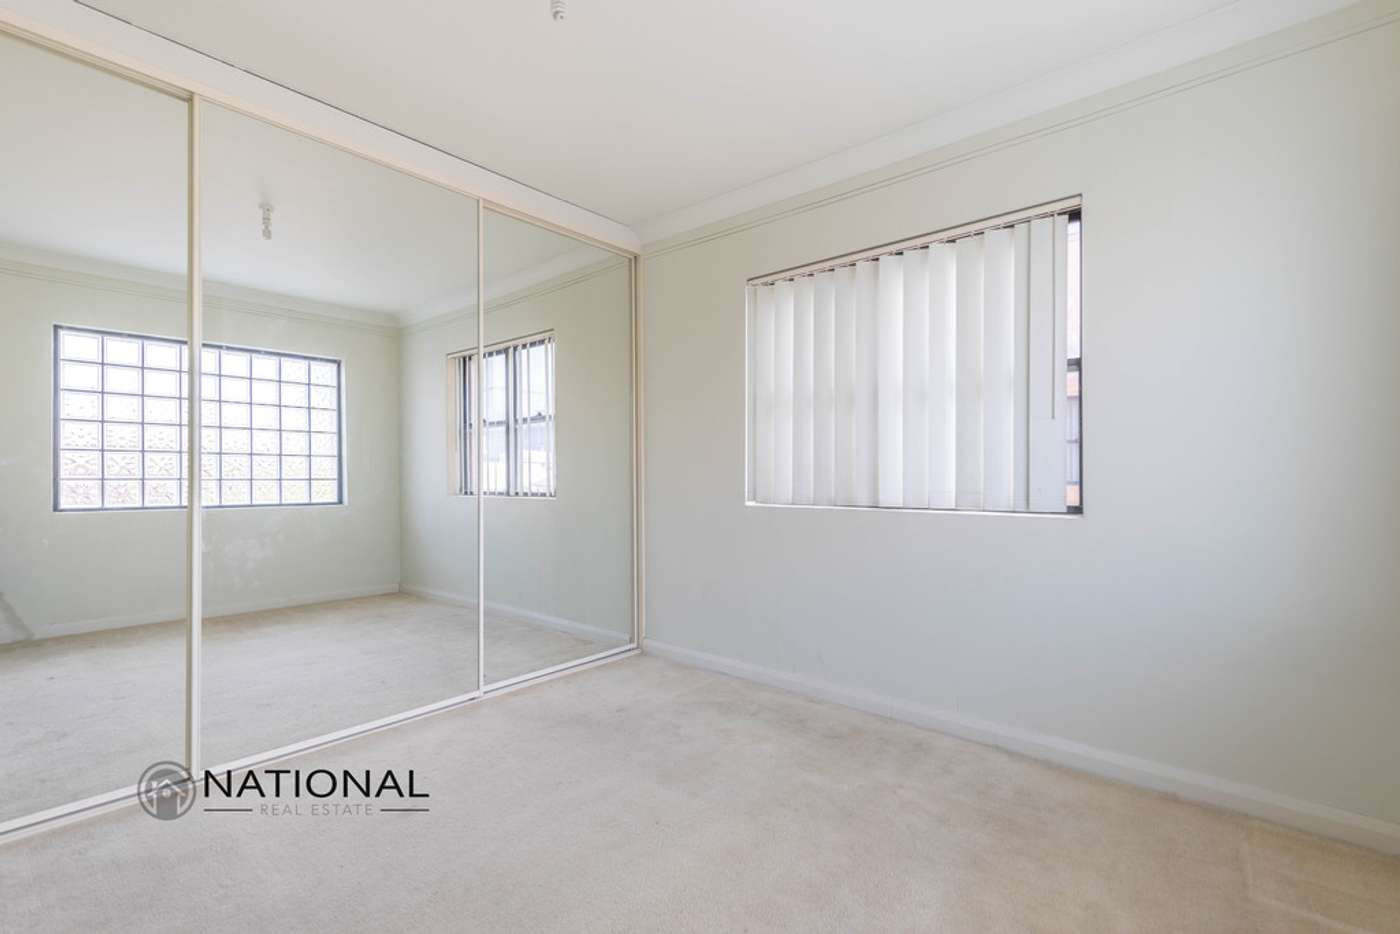 Sixth view of Homely unit listing, 16/101 Marsden St, Parramatta NSW 2150